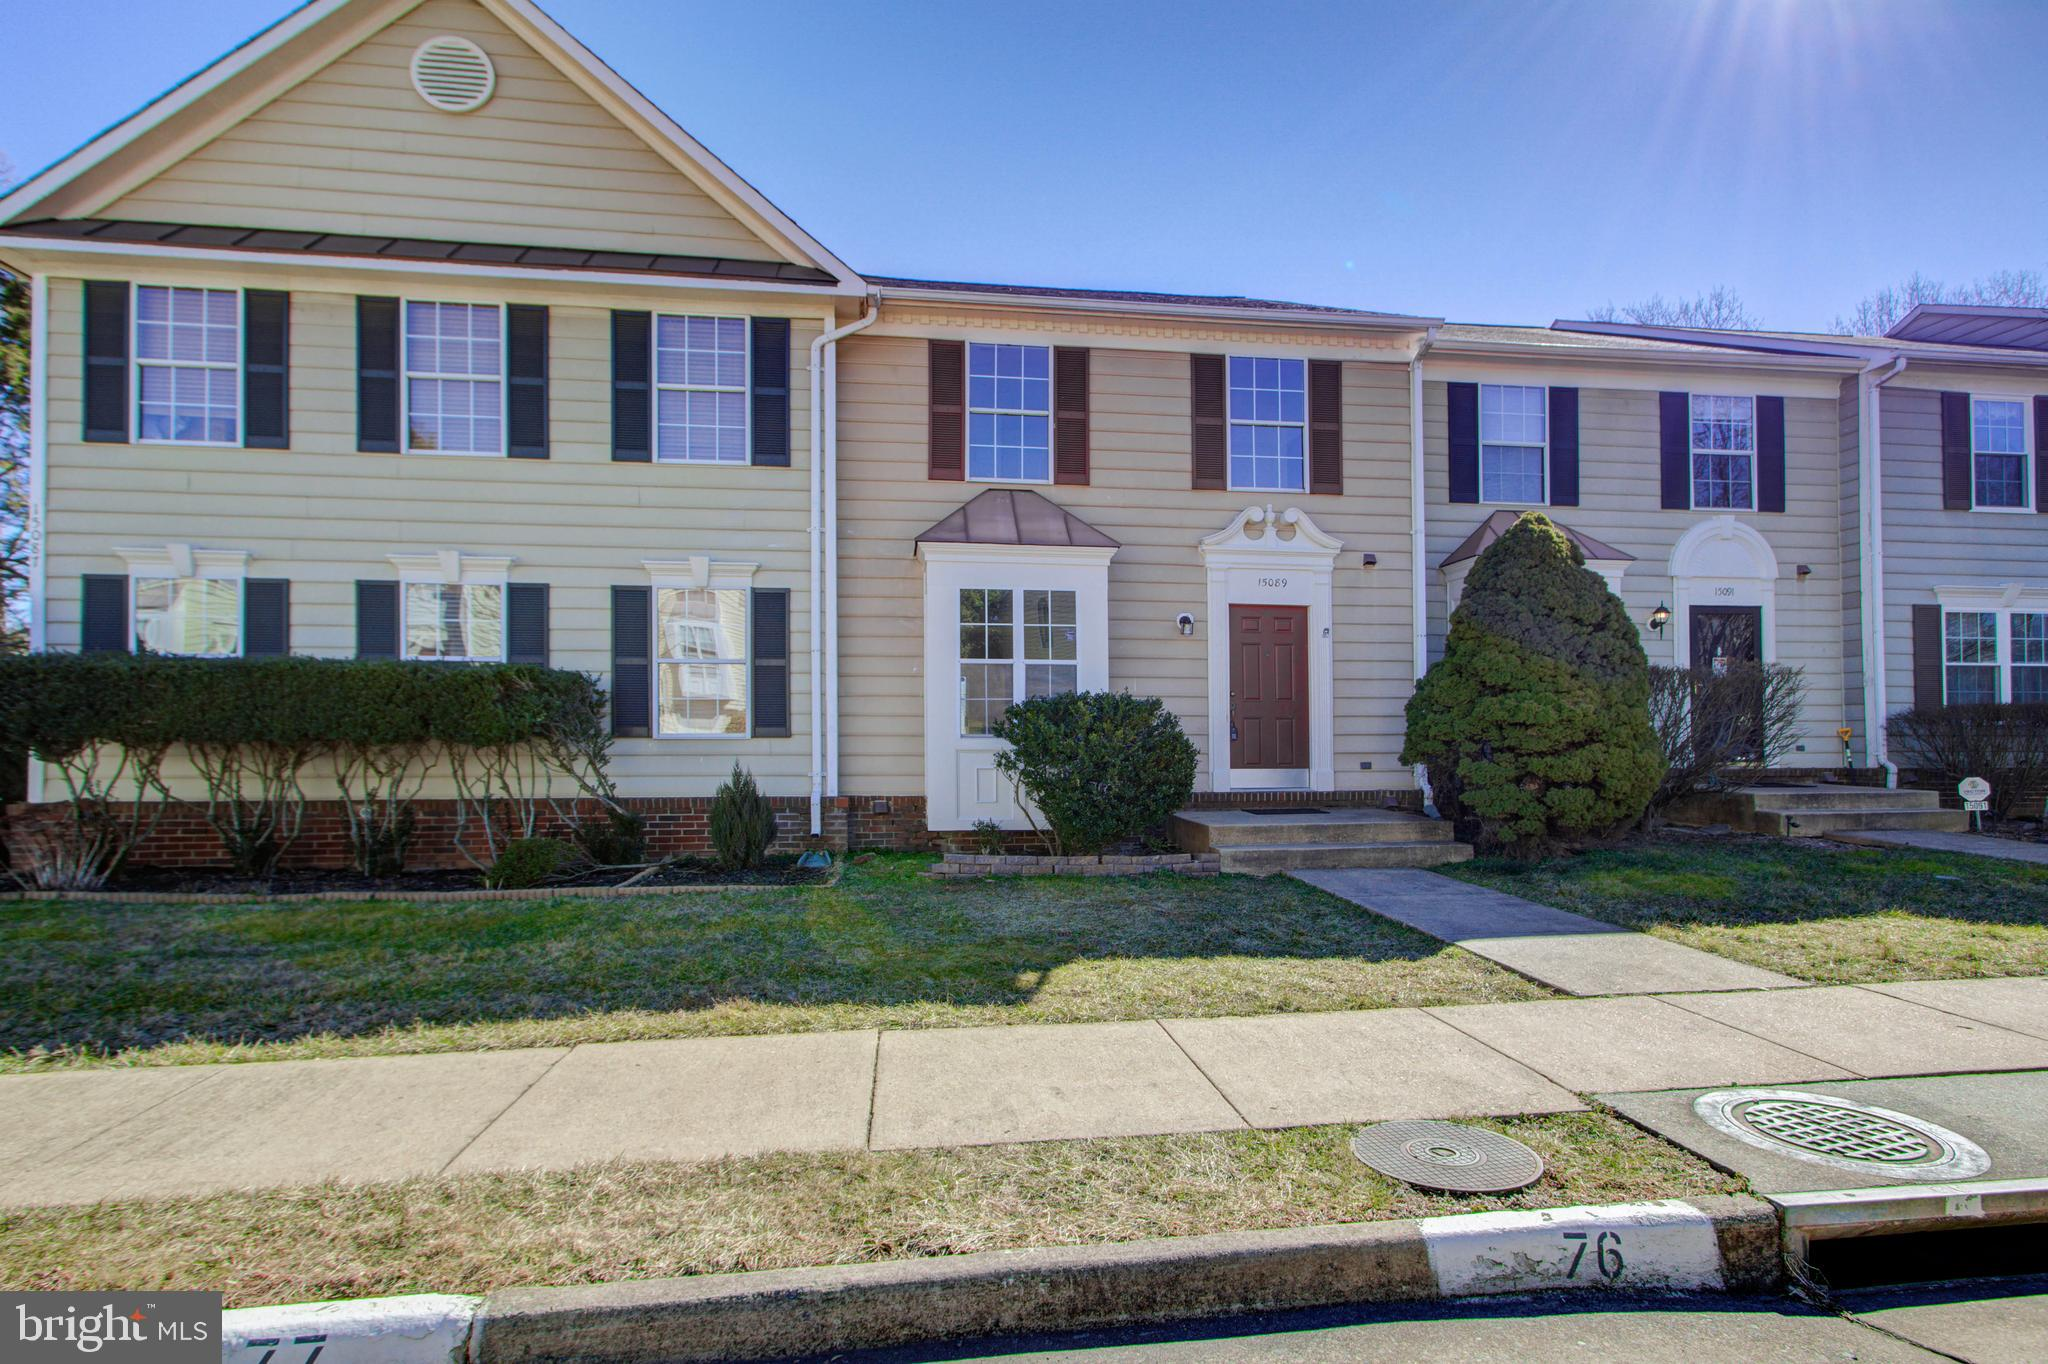 Open House Saturday & Sunday  1-4pm (Feb 27th & 28th)! Great commuter location close to Rt1 and I95!